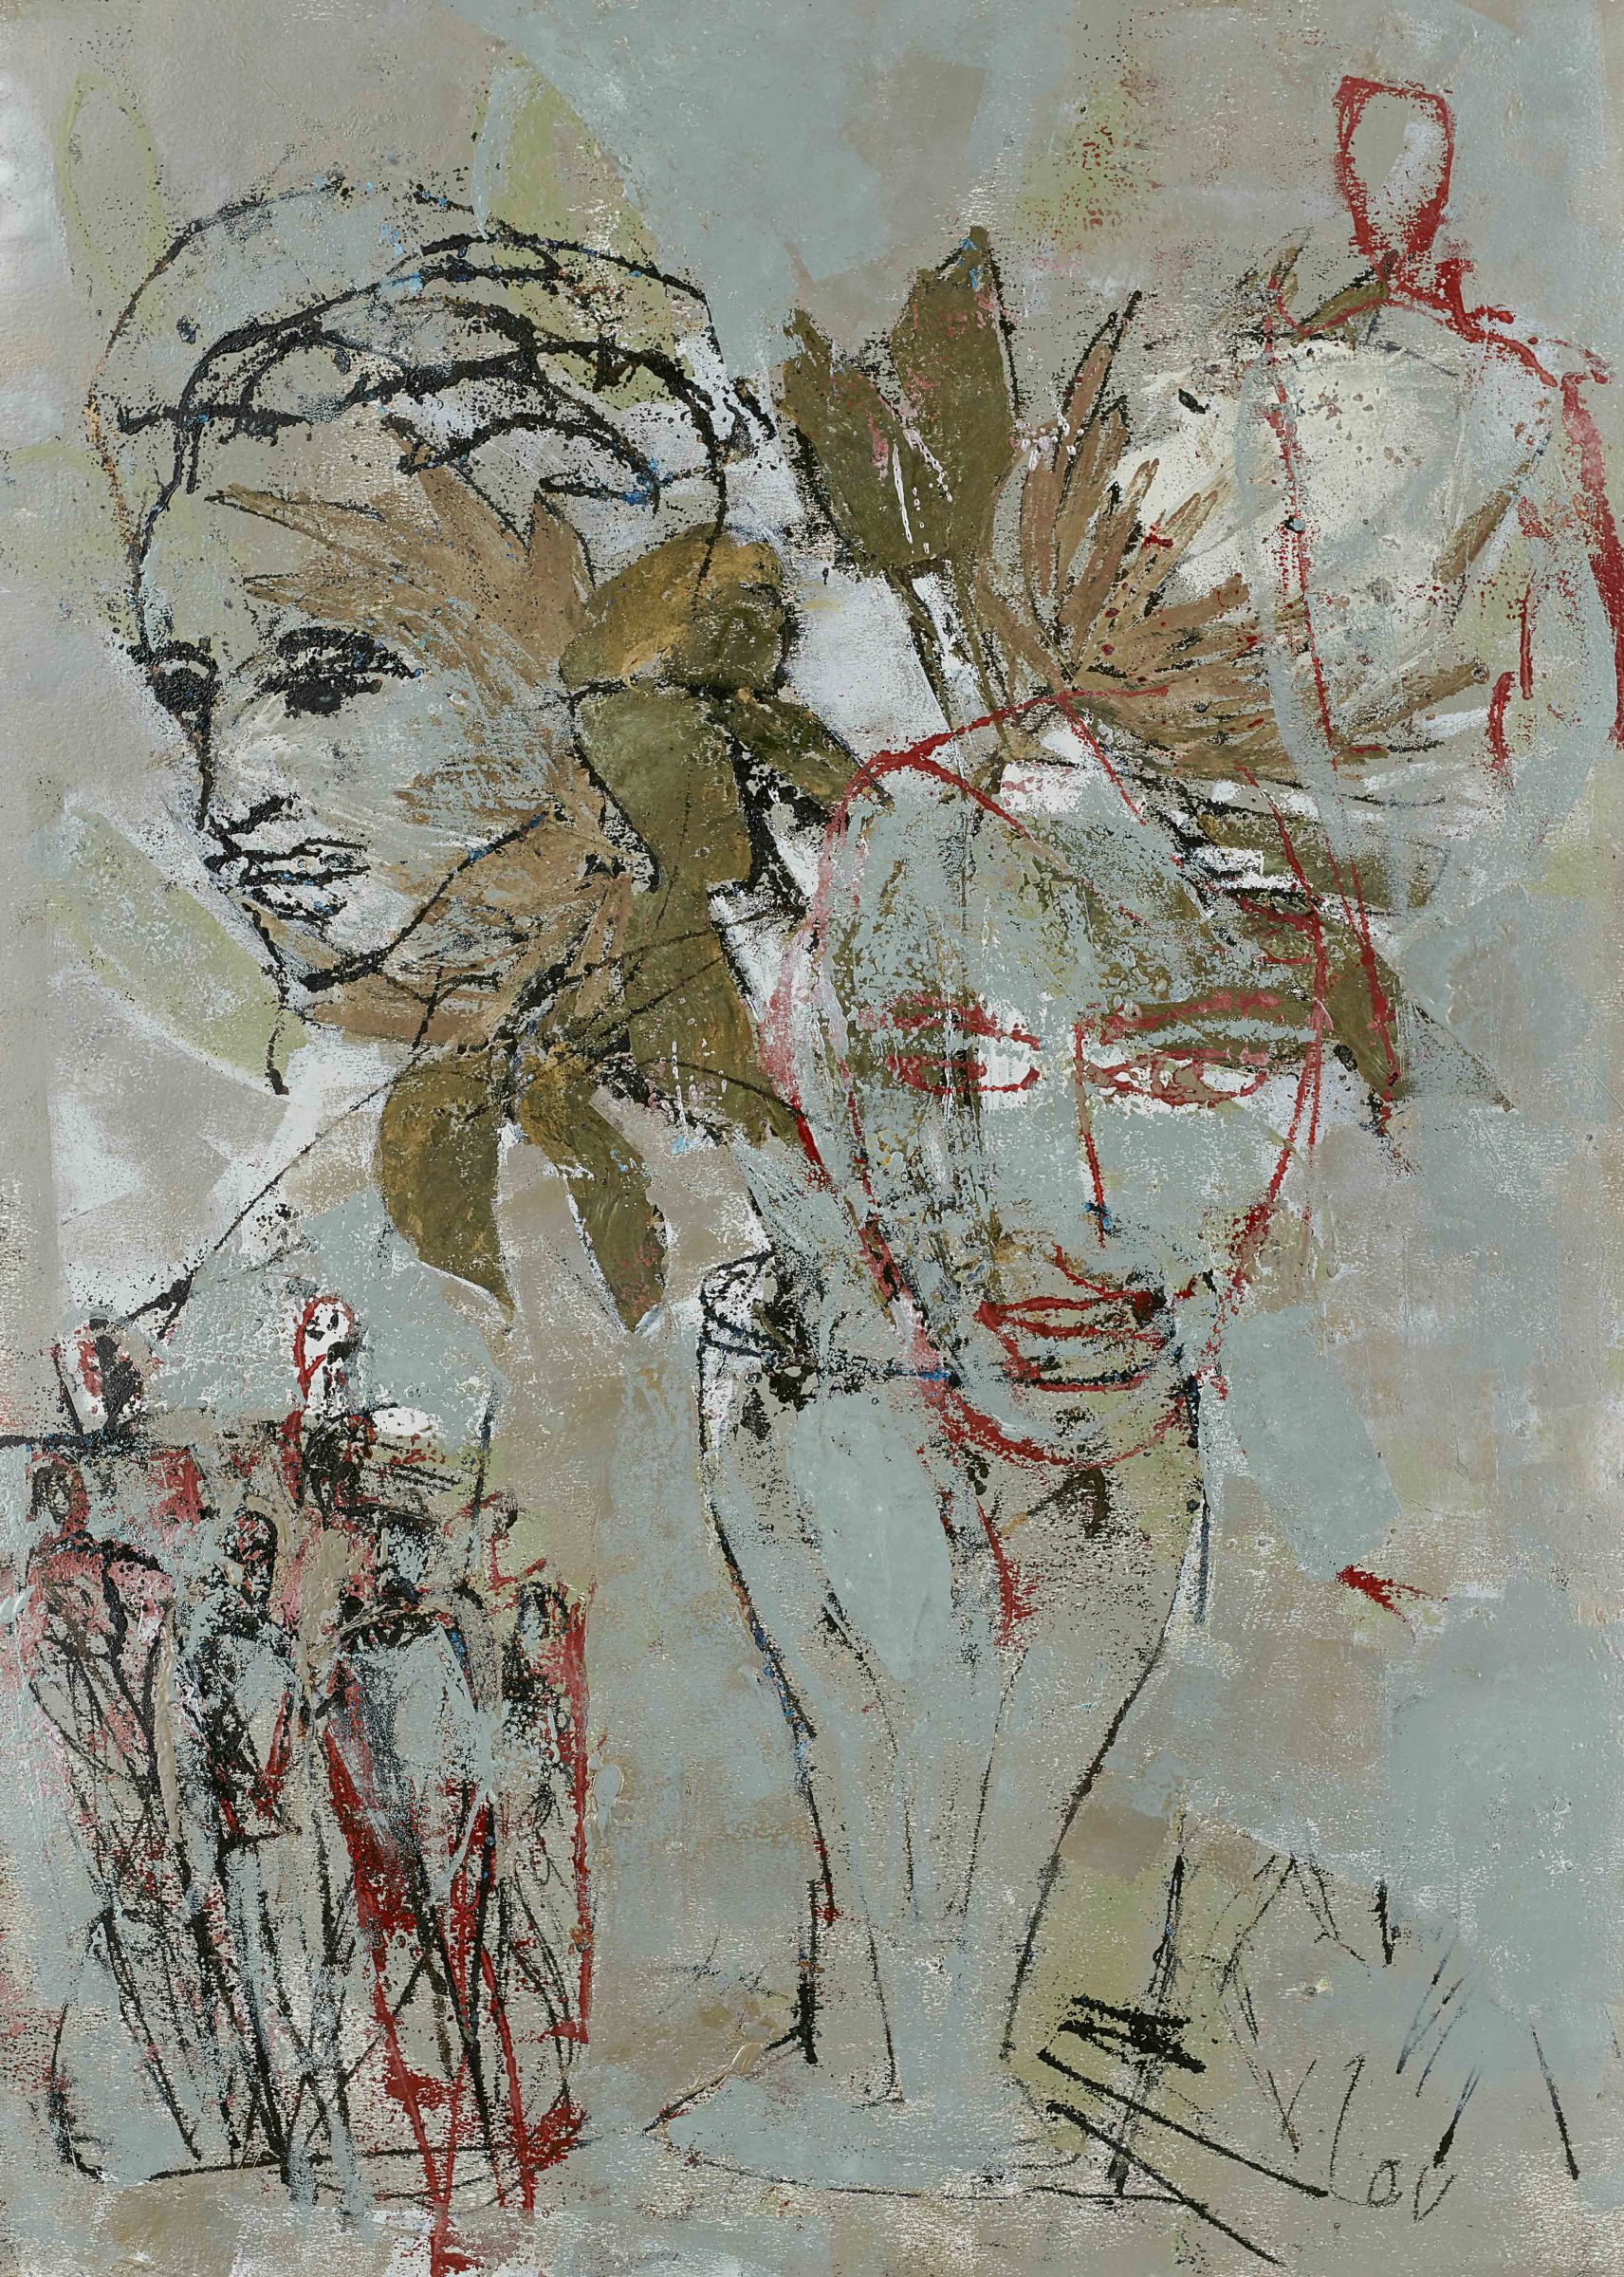 """<span class=""""link fancybox-details-link""""><a href=""""/exhibitions/12/works/artworks4309/"""">View Detail Page</a></span><div class=""""artist""""><strong>Louise Almon</strong></div><div class=""""title""""><em>The Gift II</em>, 2017</div><div class=""""medium"""">Printing ink on Fabriano</div><div class=""""dimensions"""">700x500mm</div>"""